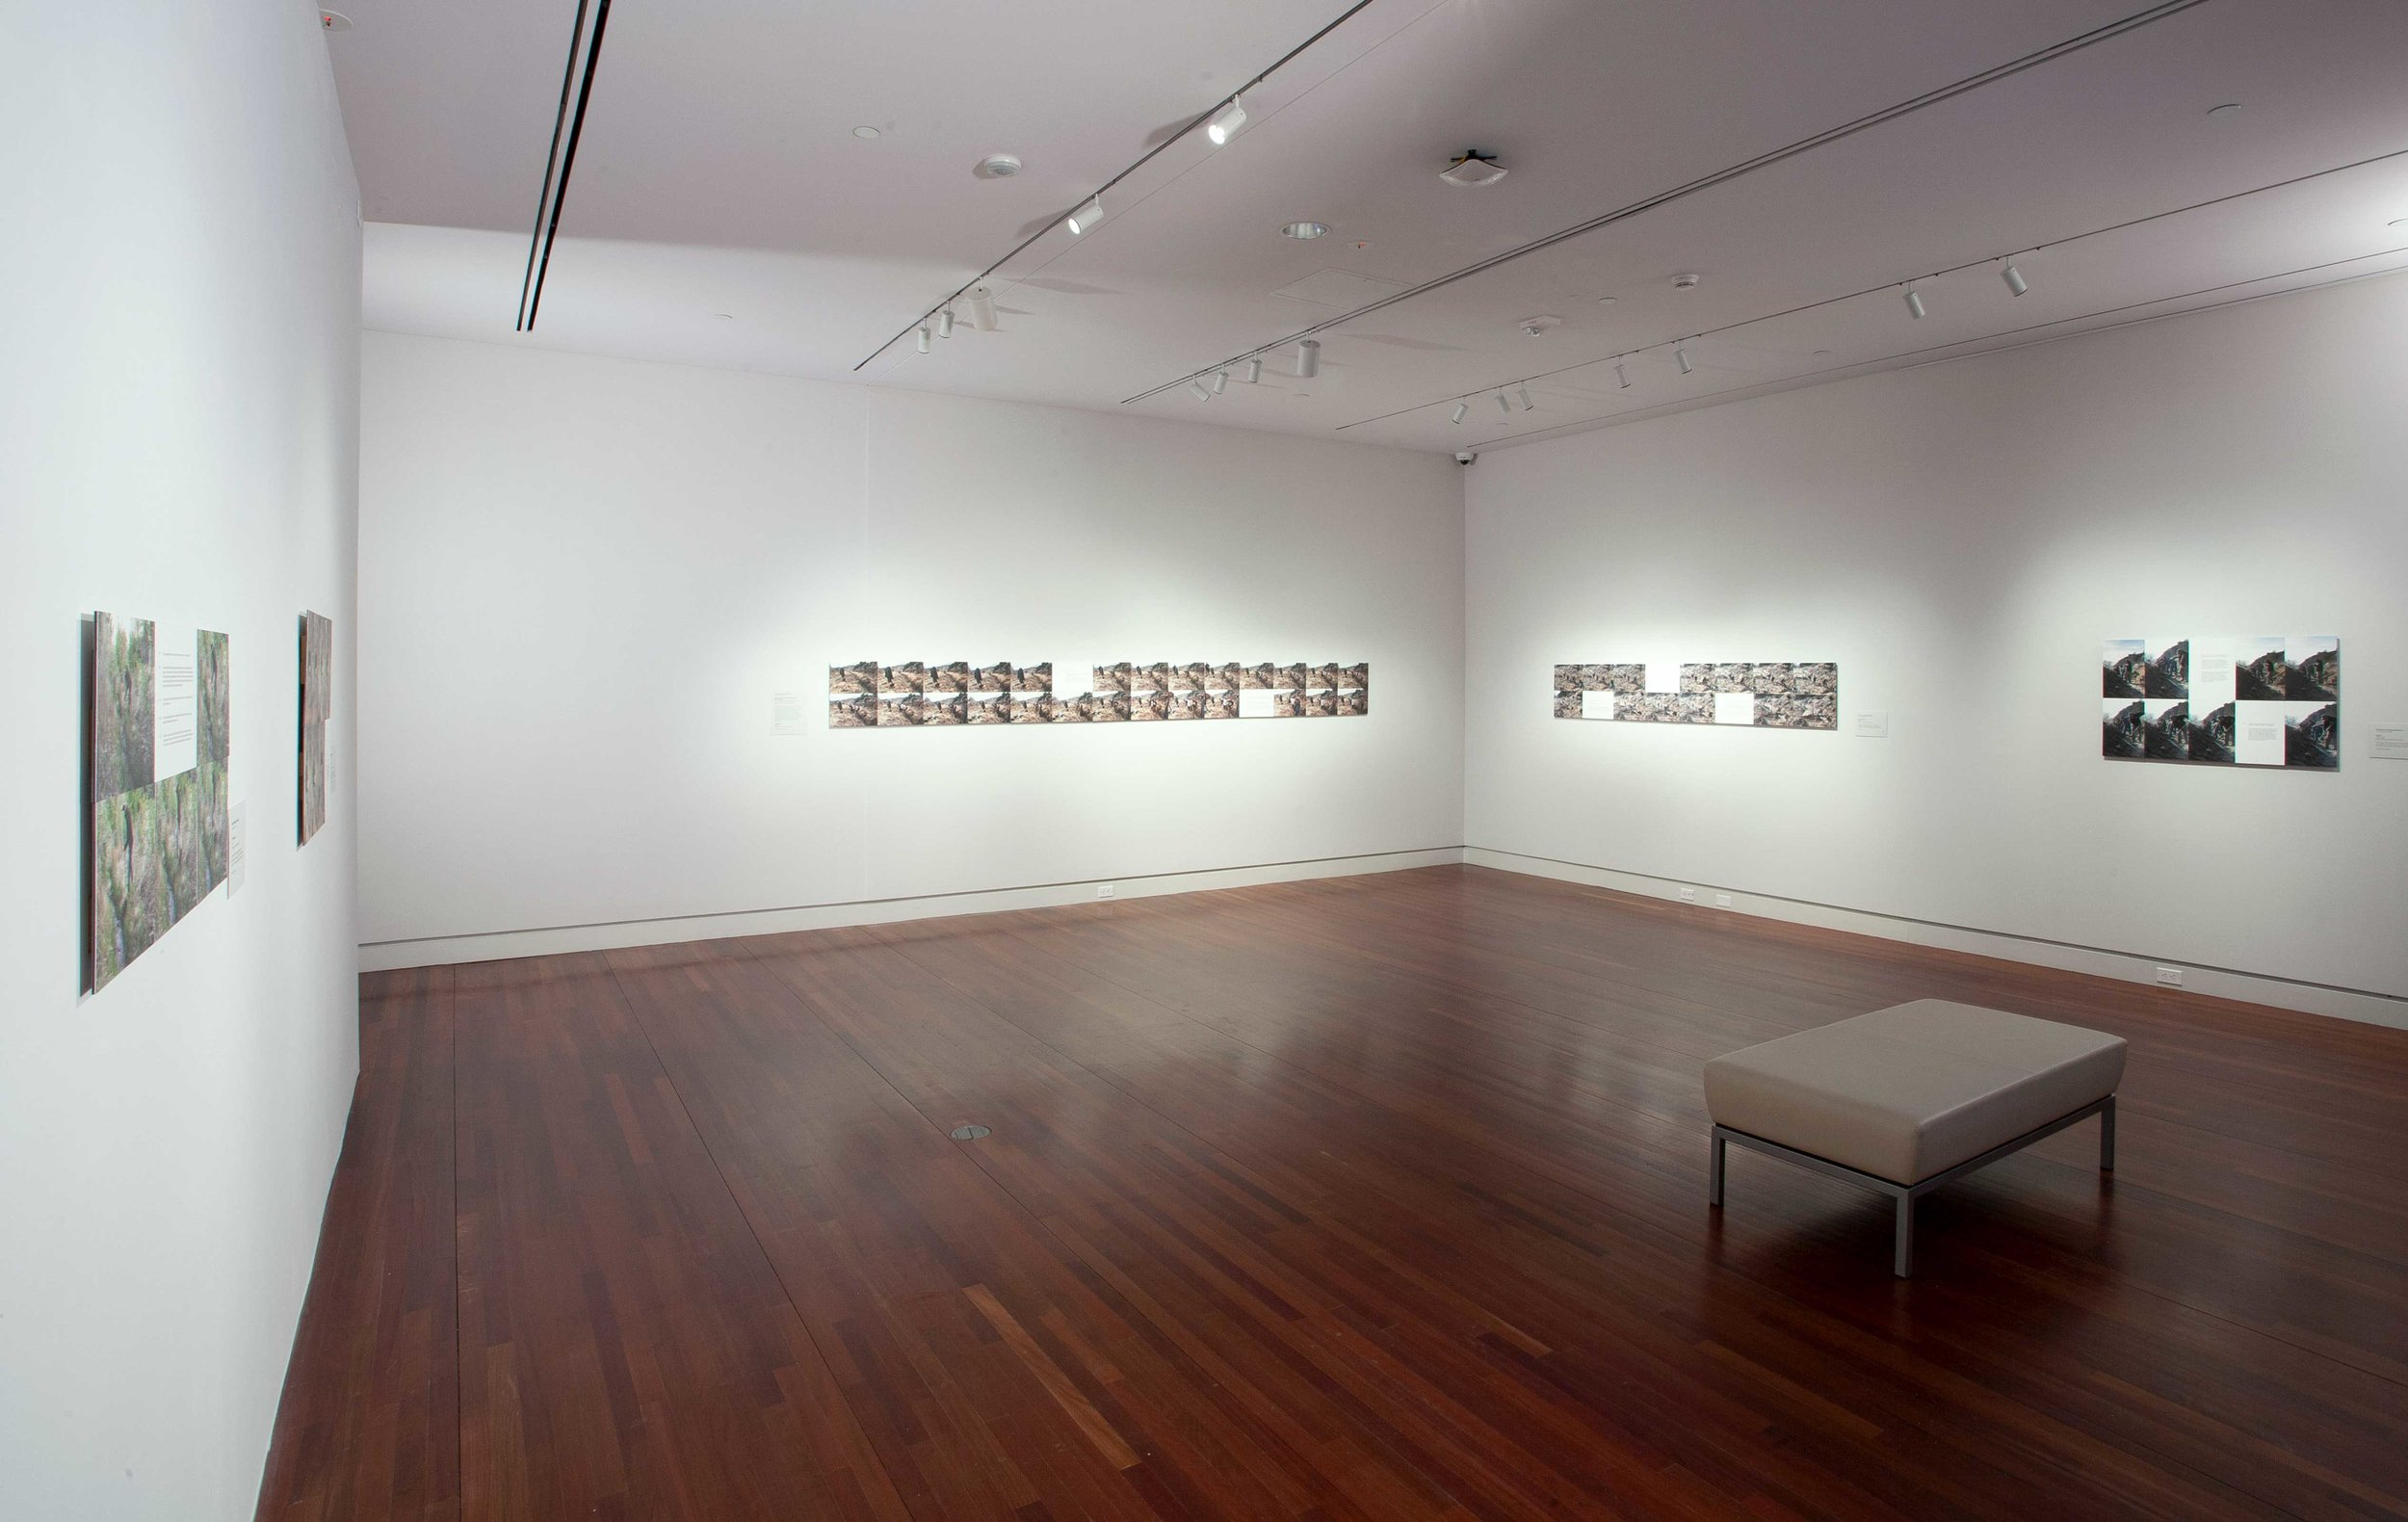 Gestures of Labor- Through the Lens of Anthropology-  A conversation with Anthropologist Dr. Donatella Davanzo   Photos by Dr. Donatella Davanzo  Installation view for CHANNEL, Colorado Springs Fine Art Center , 2019, Photo by Scott Bauer